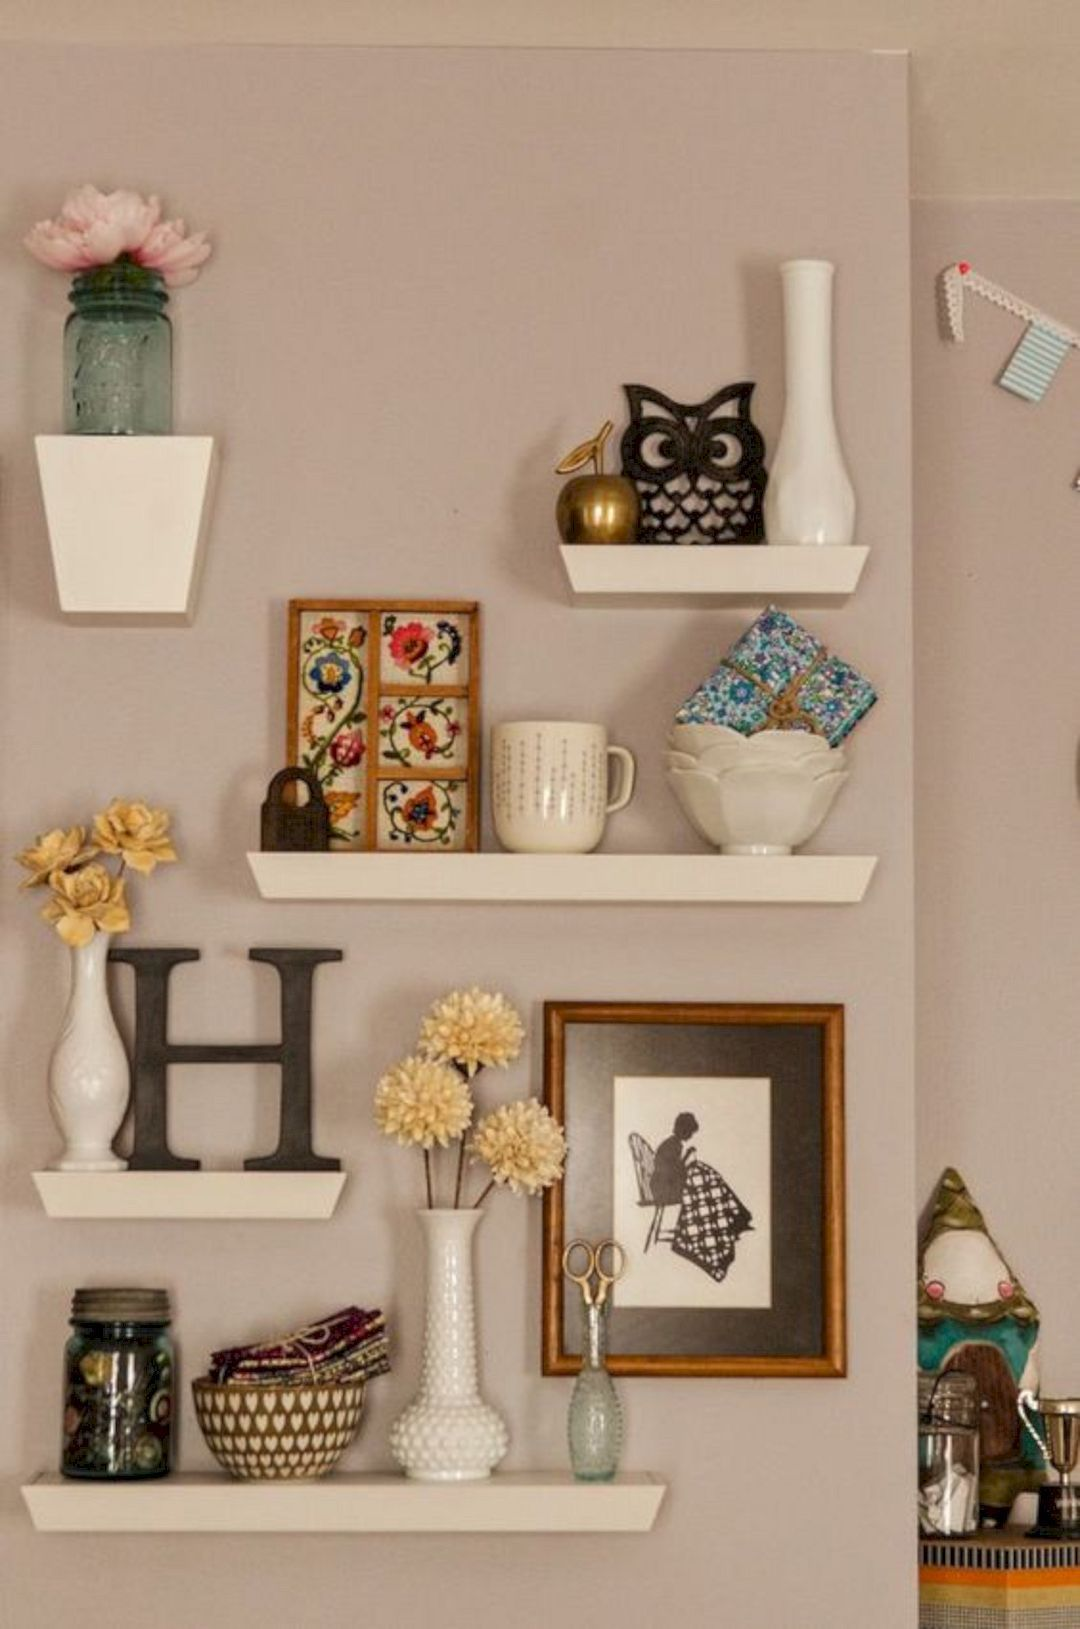 Wo Bedroom Shelf Decorating Ideas Html on hide television design ideas, bedroom designs, western bedroom ideas, bedroom wall art, shelving ideas, bedroom shelf for candles, storage for small bedrooms ideas, beautiful bedroom ideas,